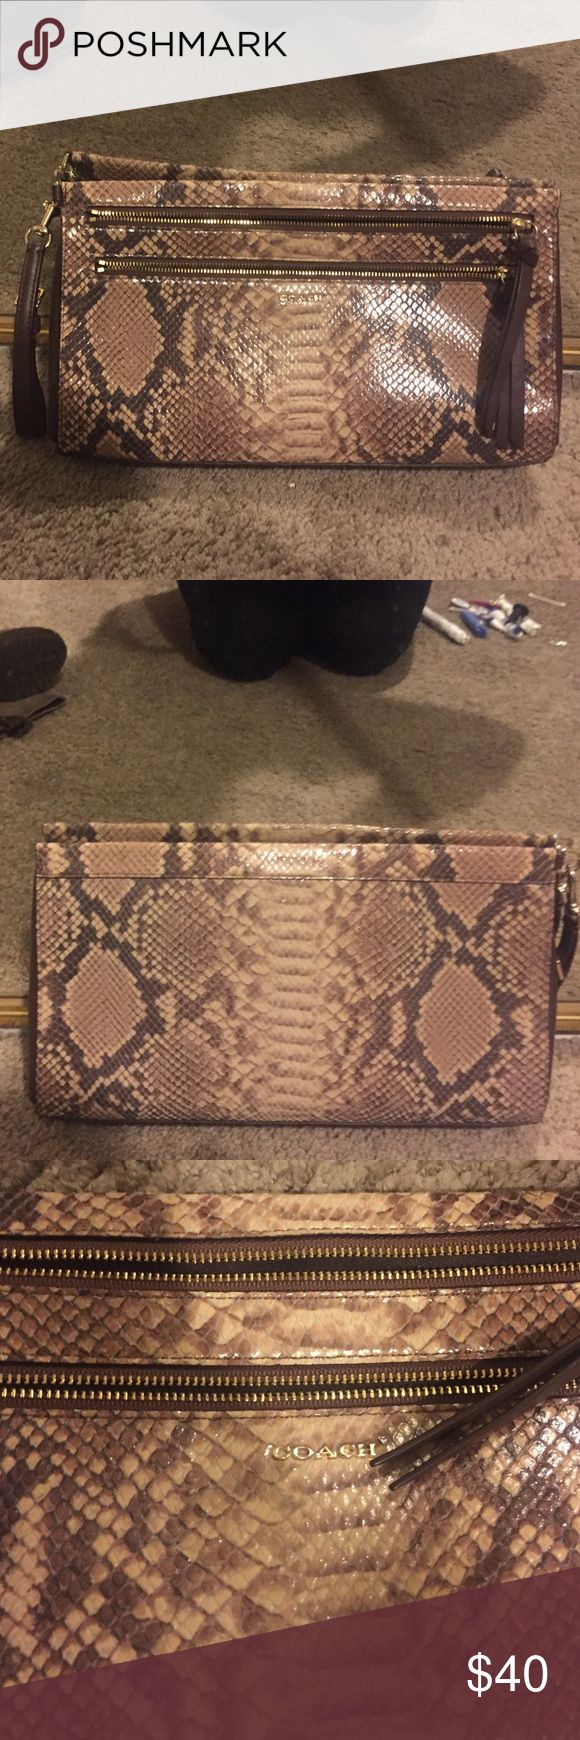 Coach clutch Amazing snakeskin Coach Clutch, barely used, no stains, or flaws in material inside or out Coach Bags Clutches & Wristlets